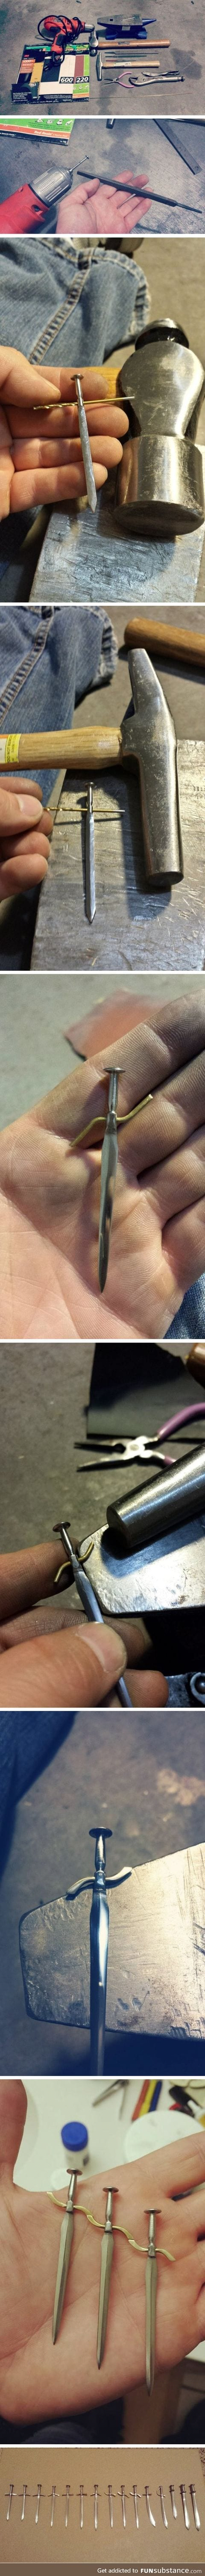 Tiny swords forged from nails